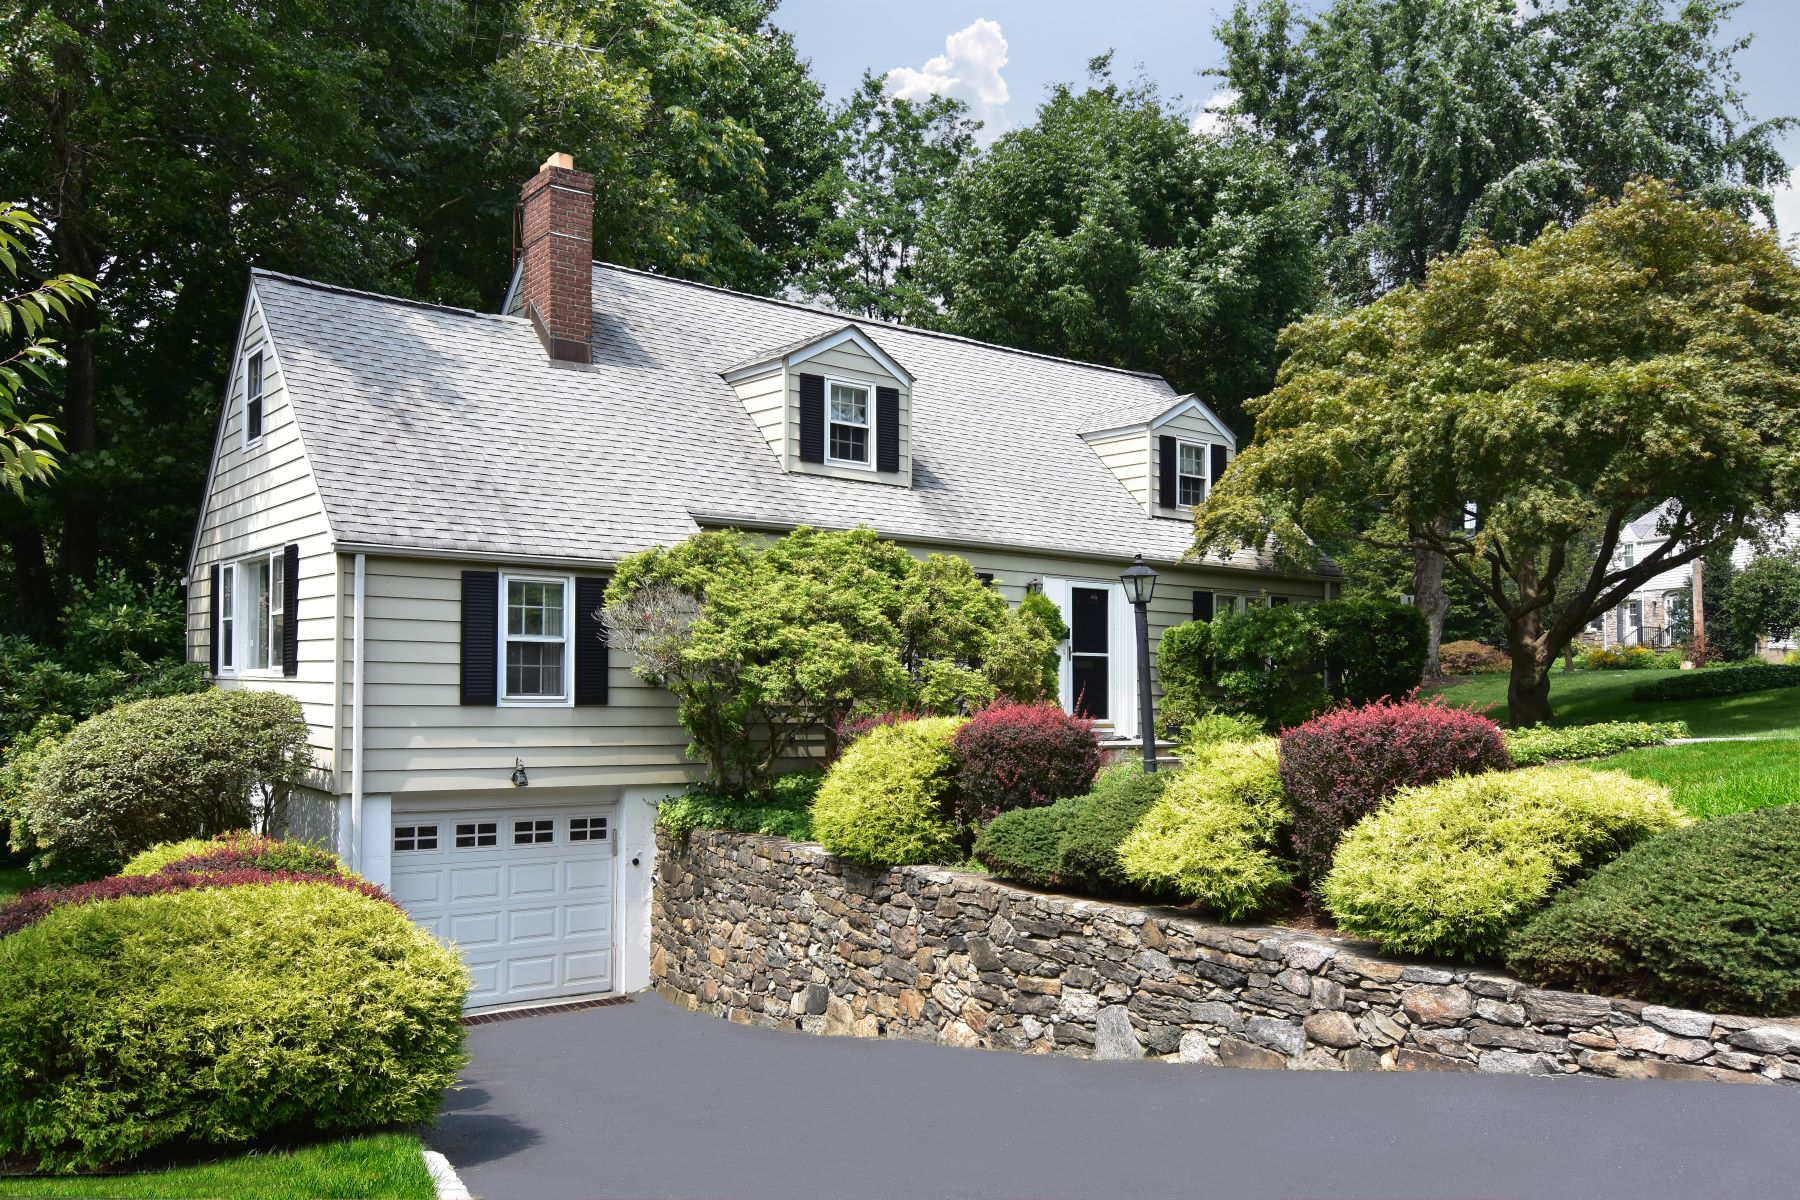 Single Family Homes for Active at 102 Crest Drive Tarrytown, New York 10591 United States